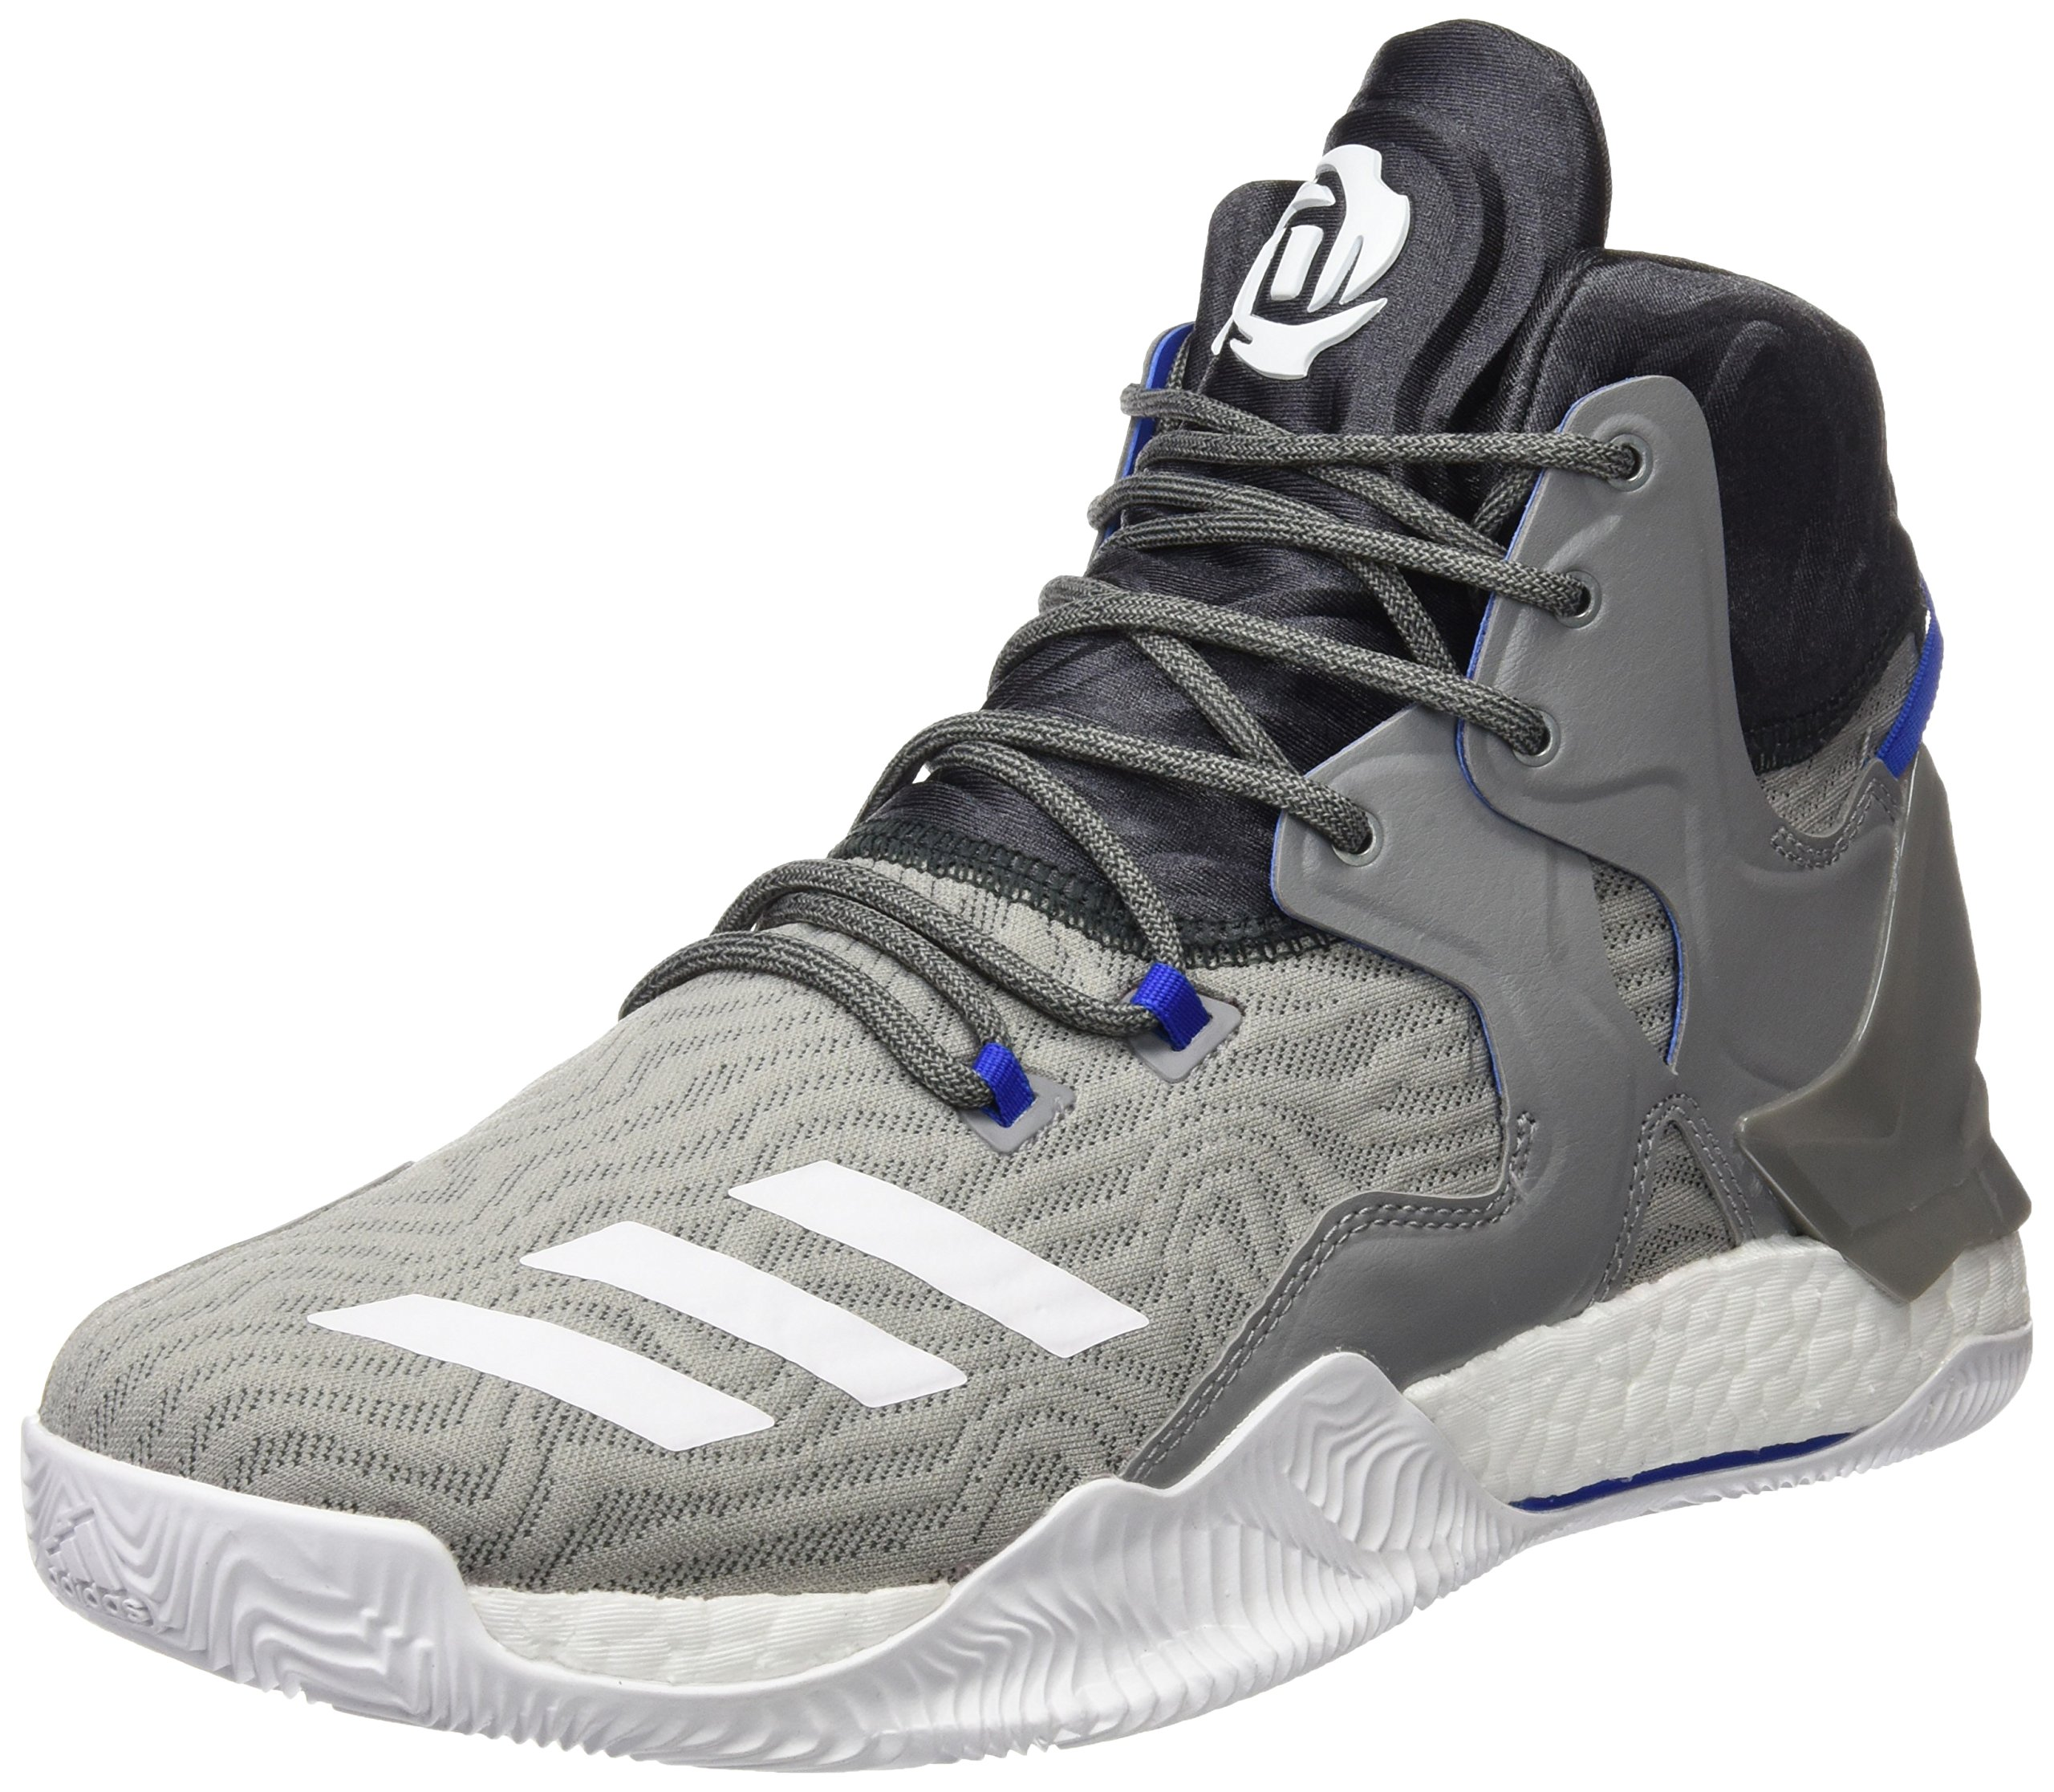 the latest be824 bc84d Adidas Mens D Rose 7 Trainers. Adidas Men s D Rose 8 Basketball Shoes